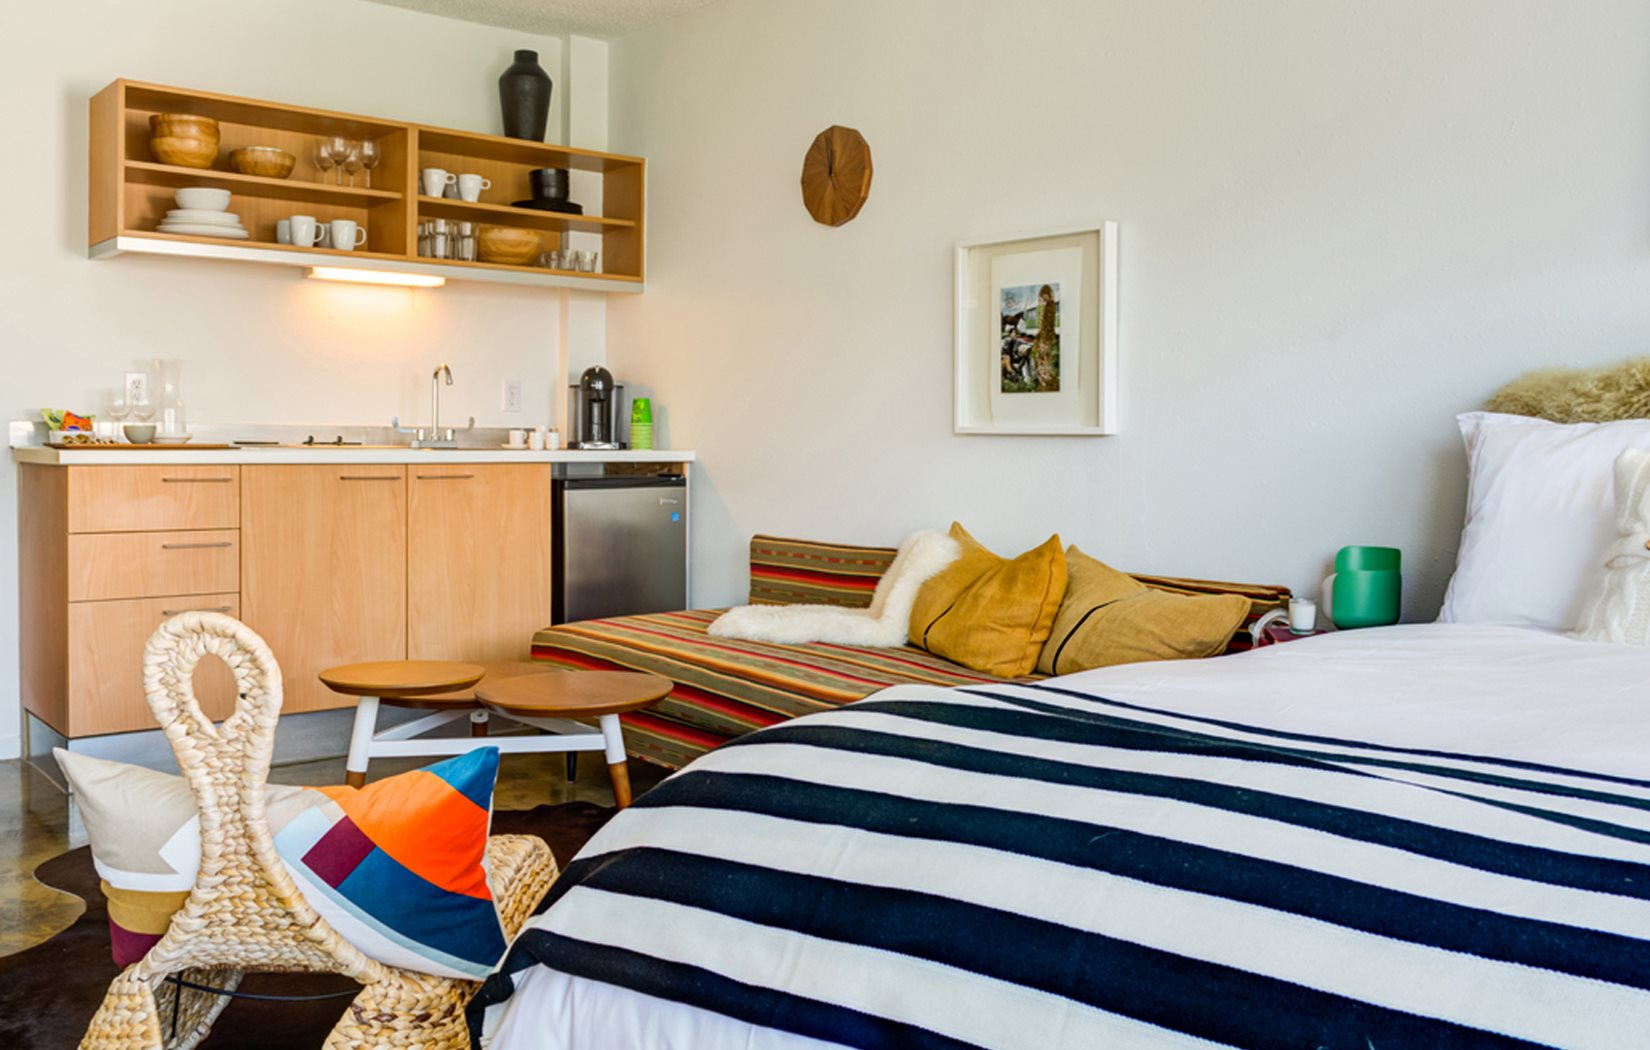 The Flat | Apartments in Los Angeles, CA